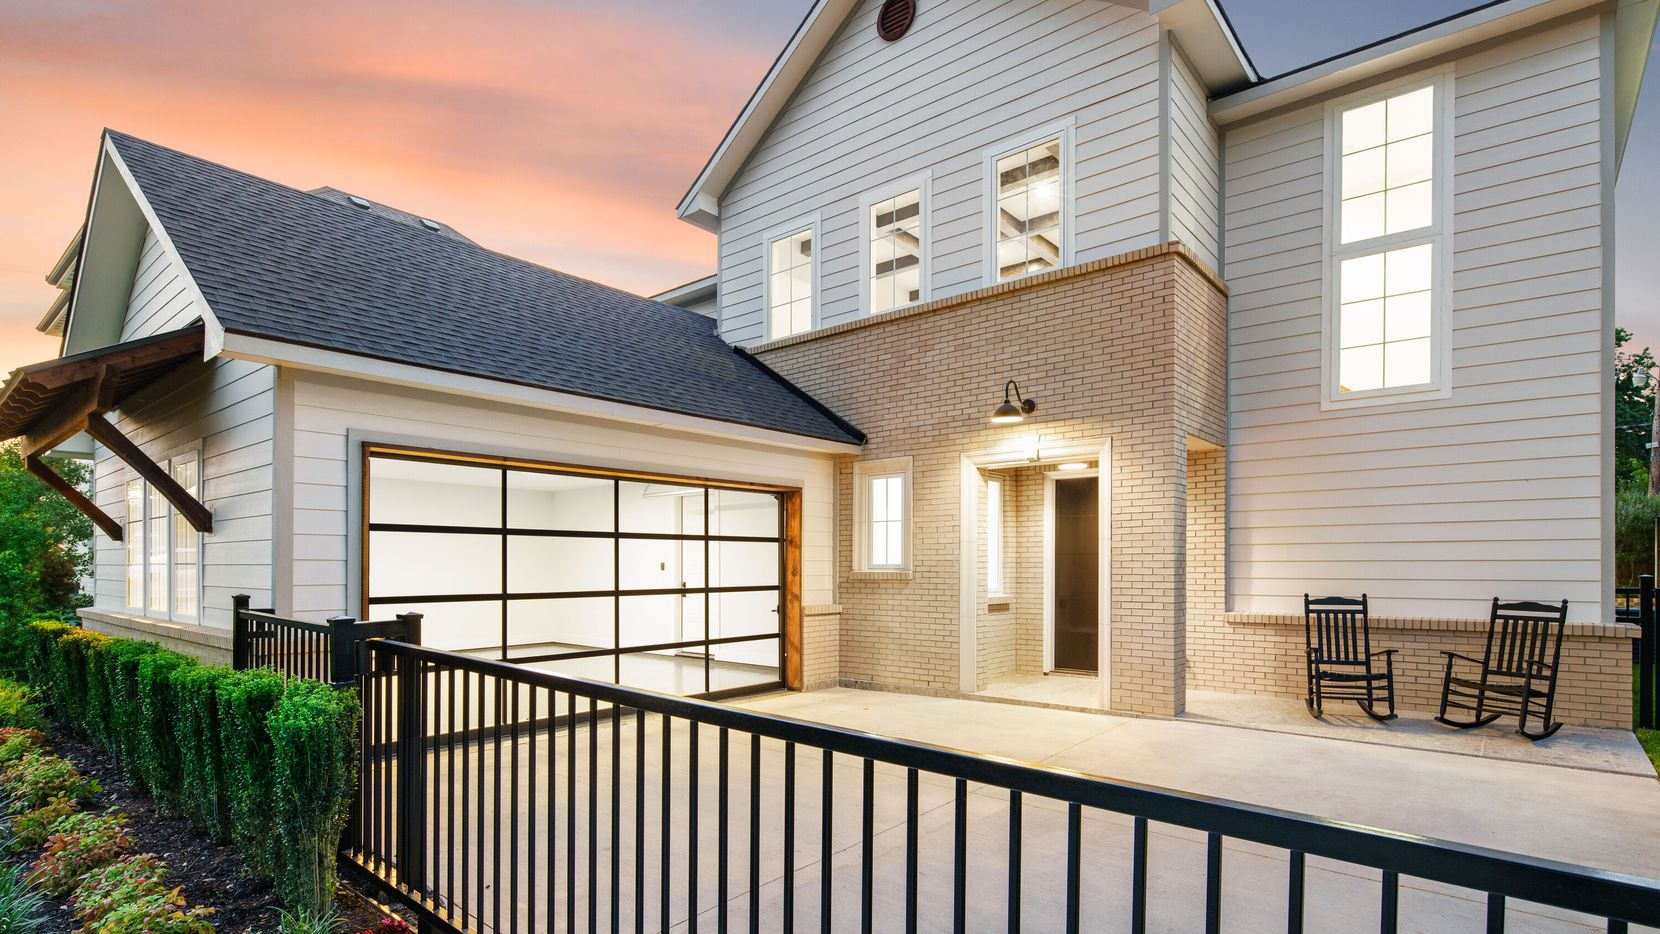 Take a look at the exterior of the home at 3935 Lively Lane in Dallas.